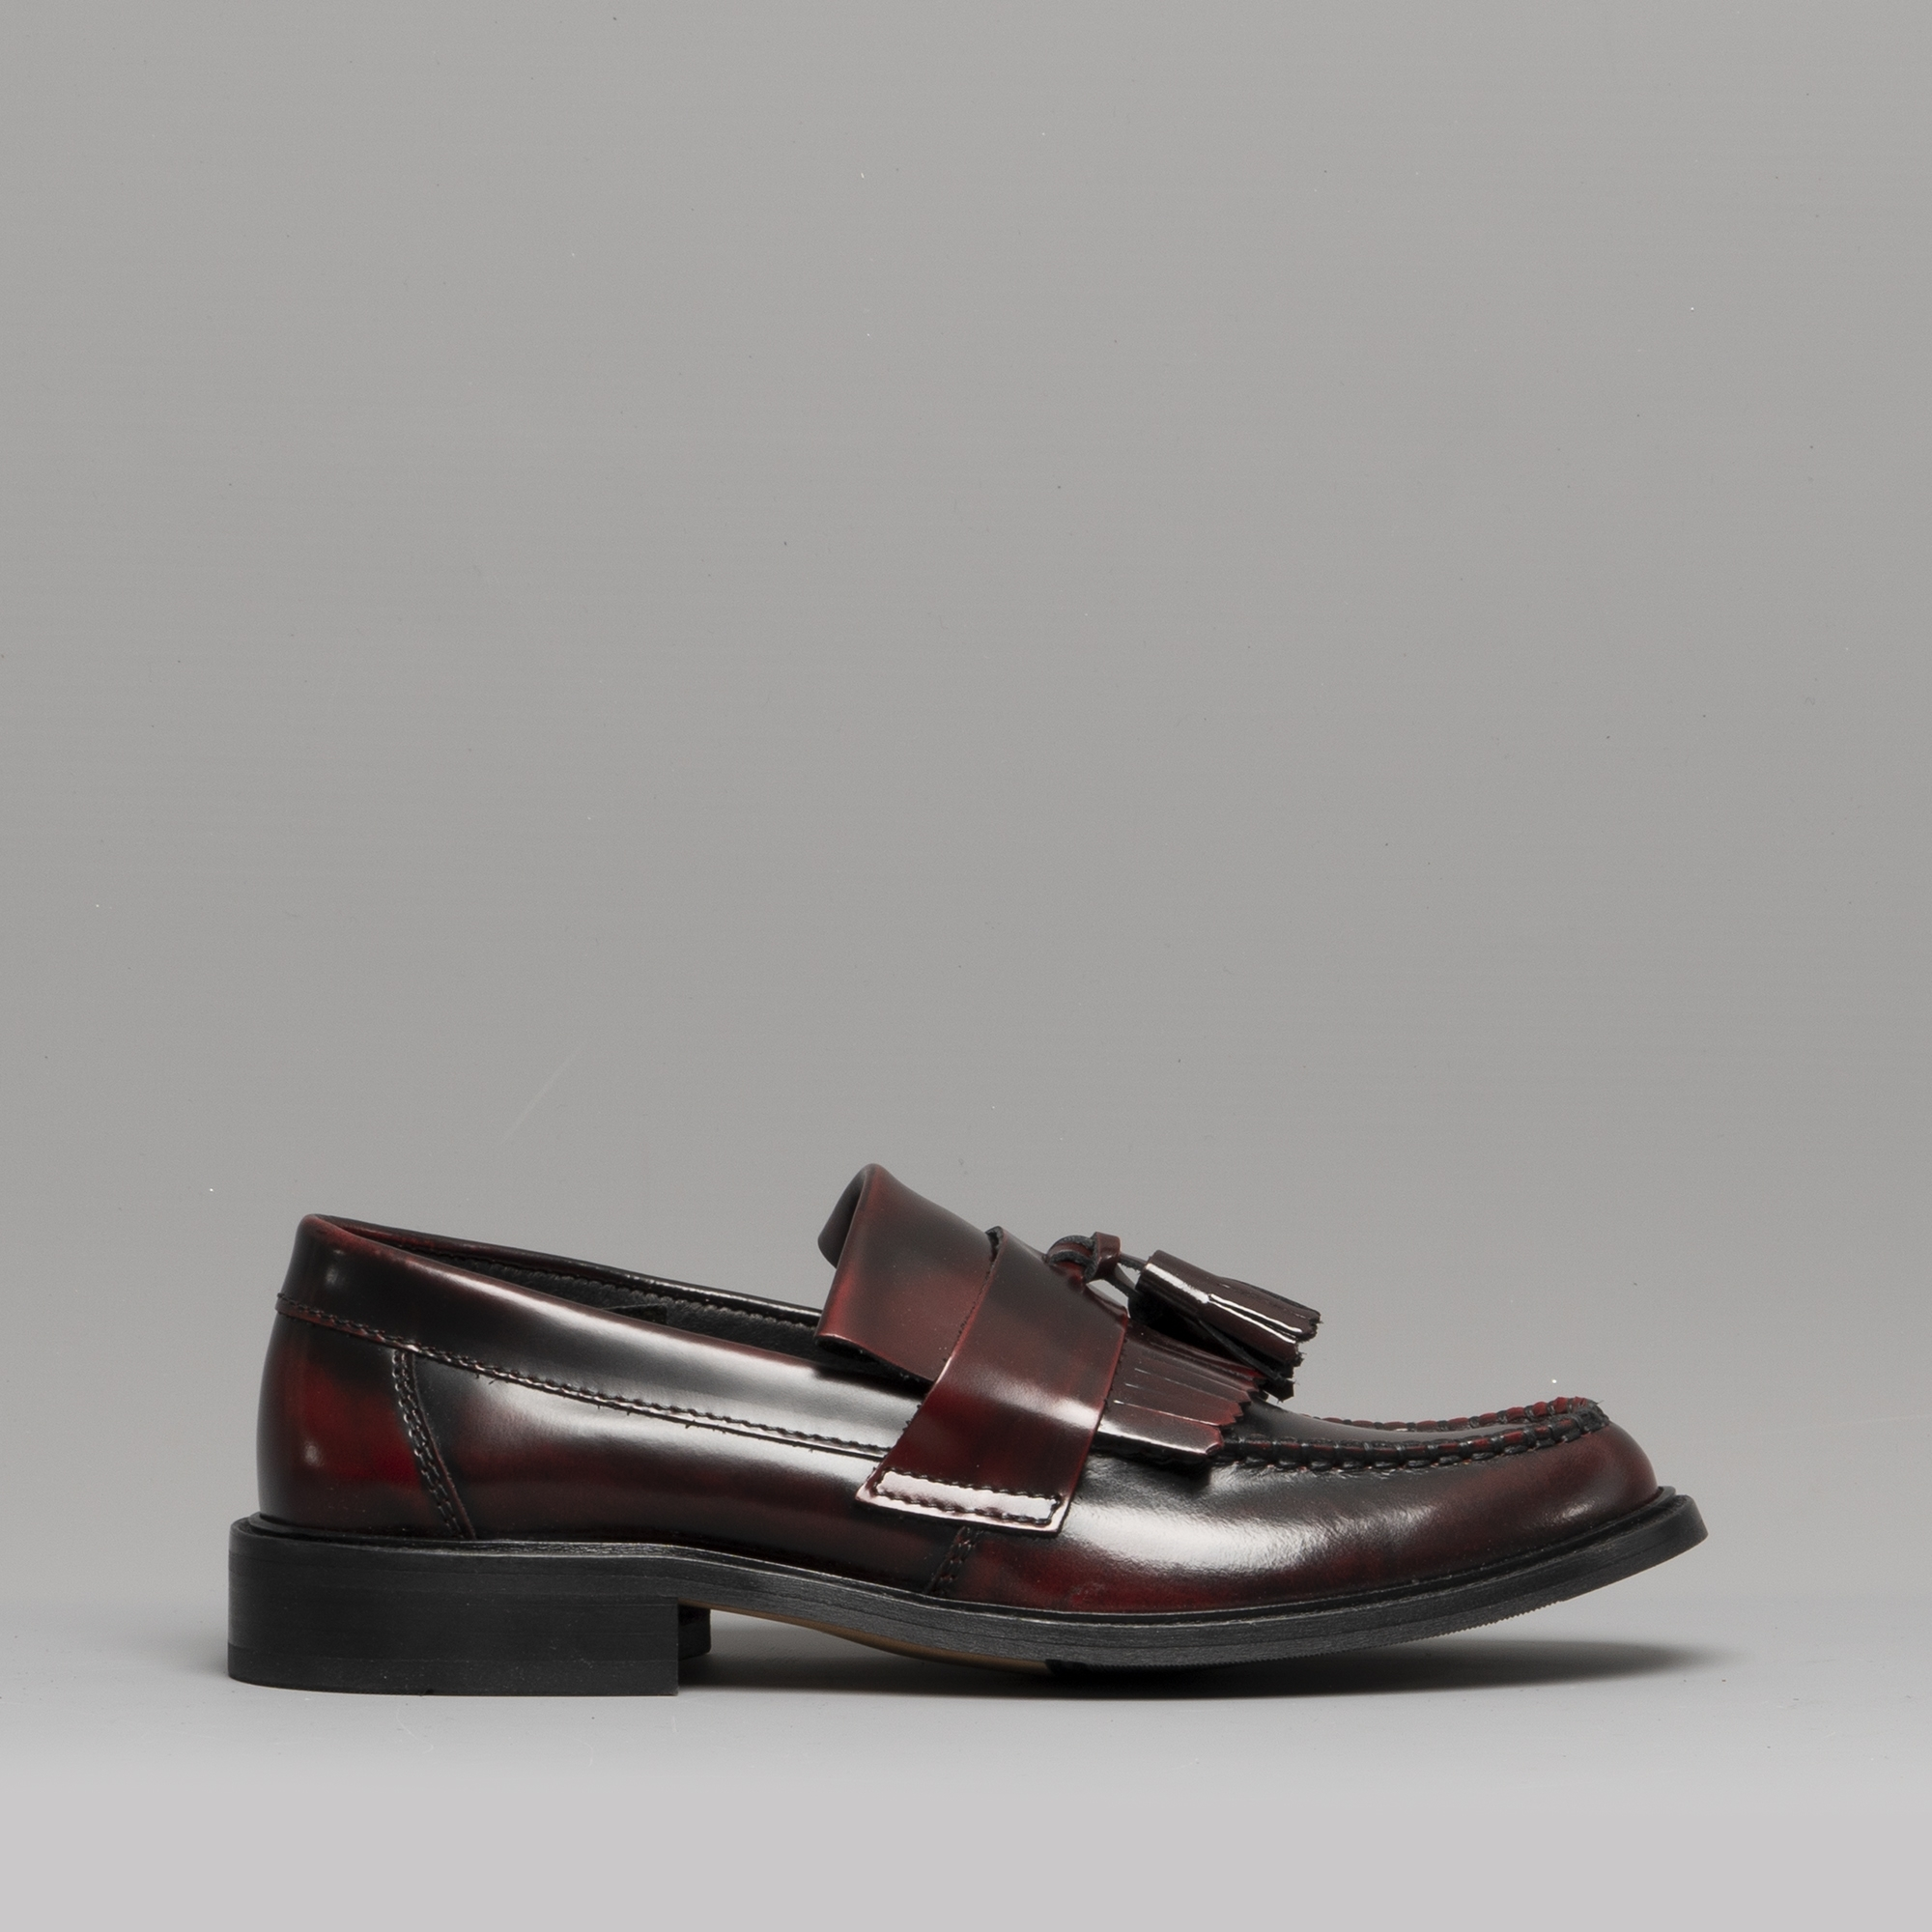 50834da0f01 IKON SELECTA Womens Ladies Tassel Loafers Oxblood